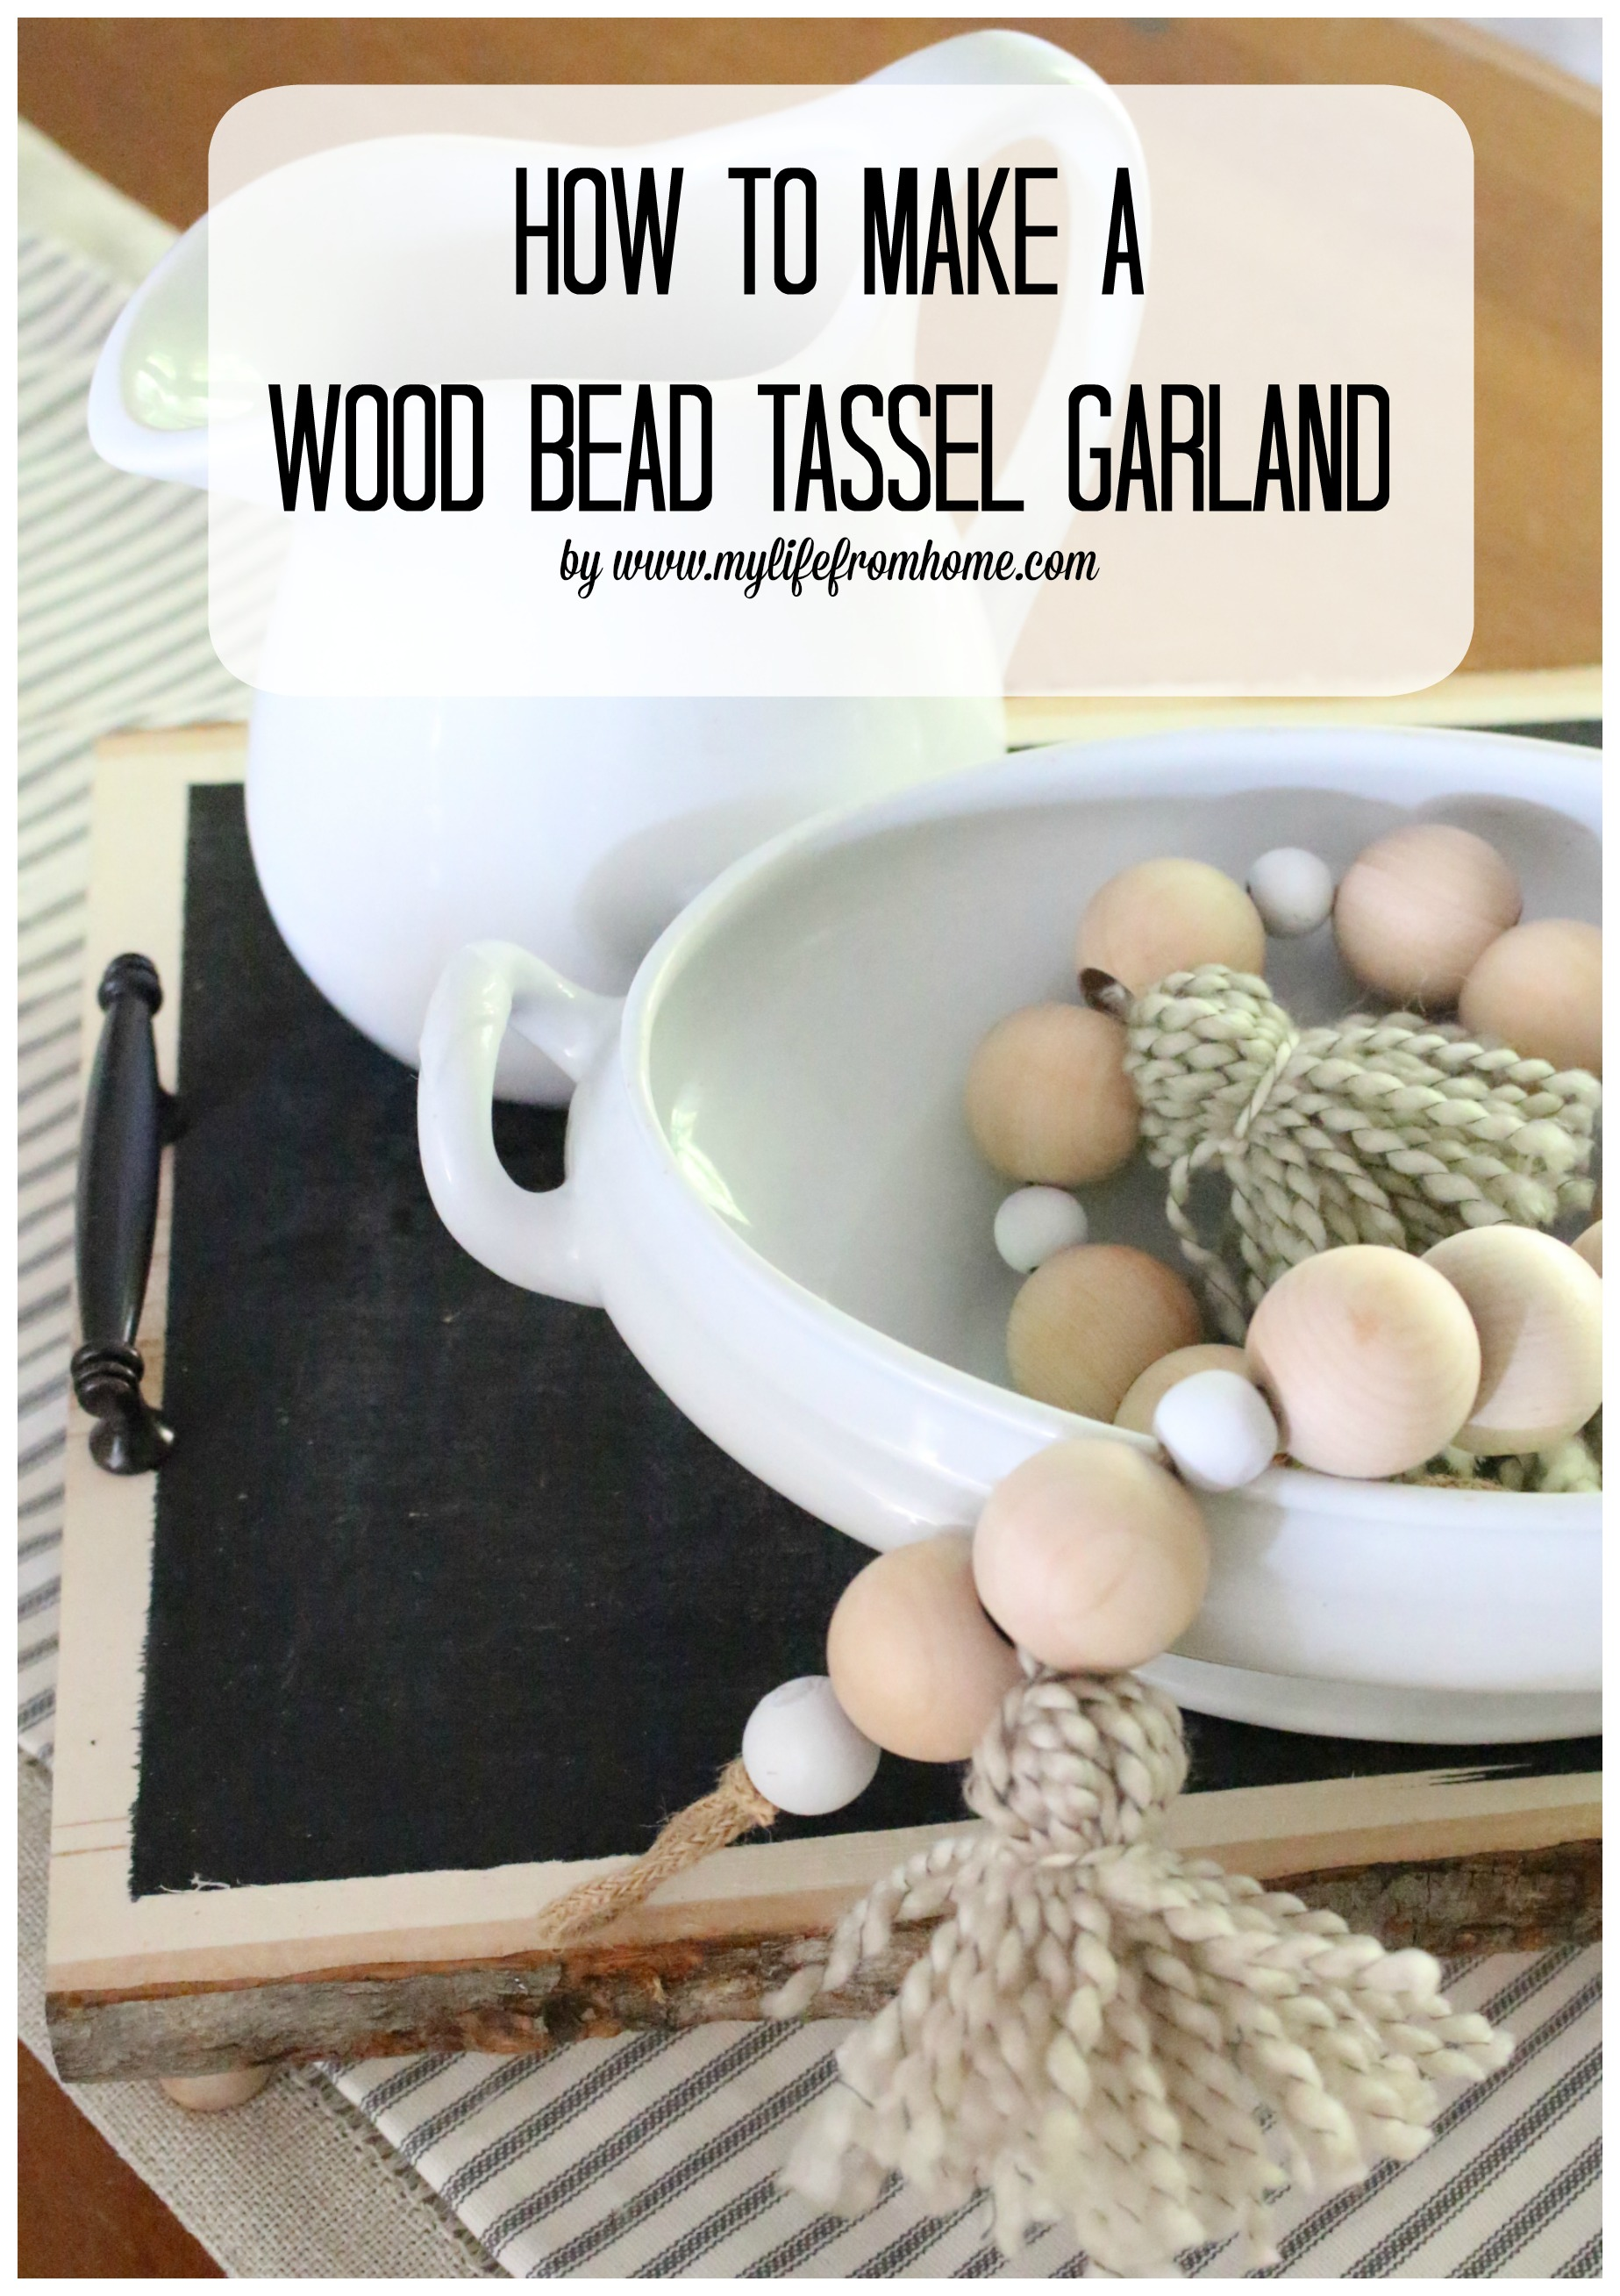 how-to-make-a-wood-bead-tassel-garland-crafts-diy-wood-bead-garland-home-decor-craft-garland-how-to-make-your-own-tassels-diy-tassels